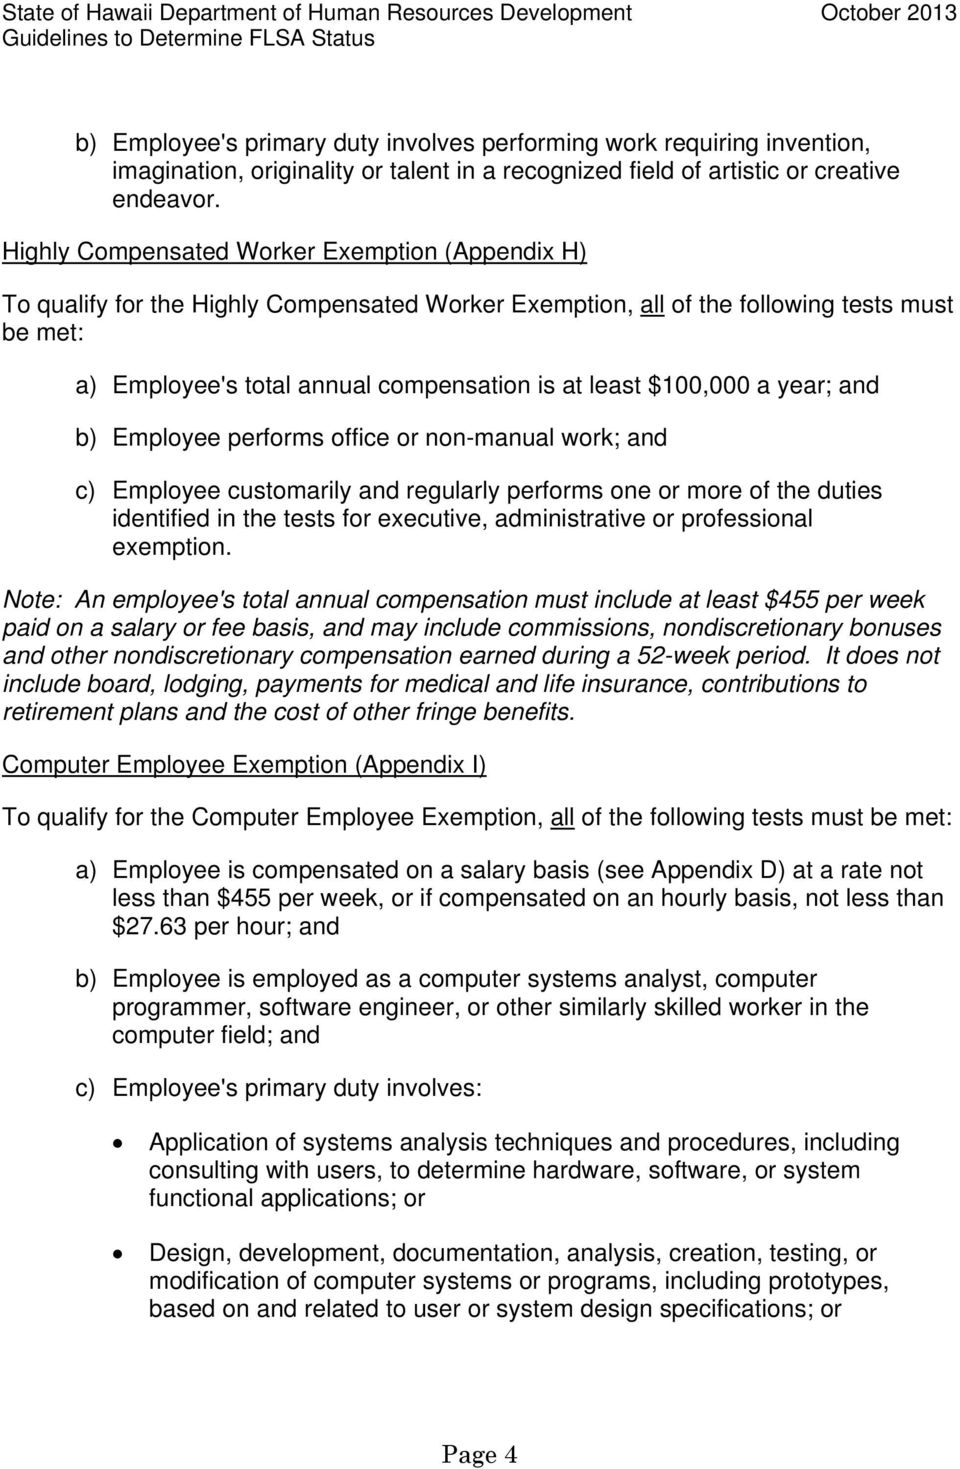 Highly Compensated Worker Exemption (Appendix H) To qualify for the Highly Compensated Worker Exemption, all of the following tests must be met: a) Employee's total annual compensation is at least